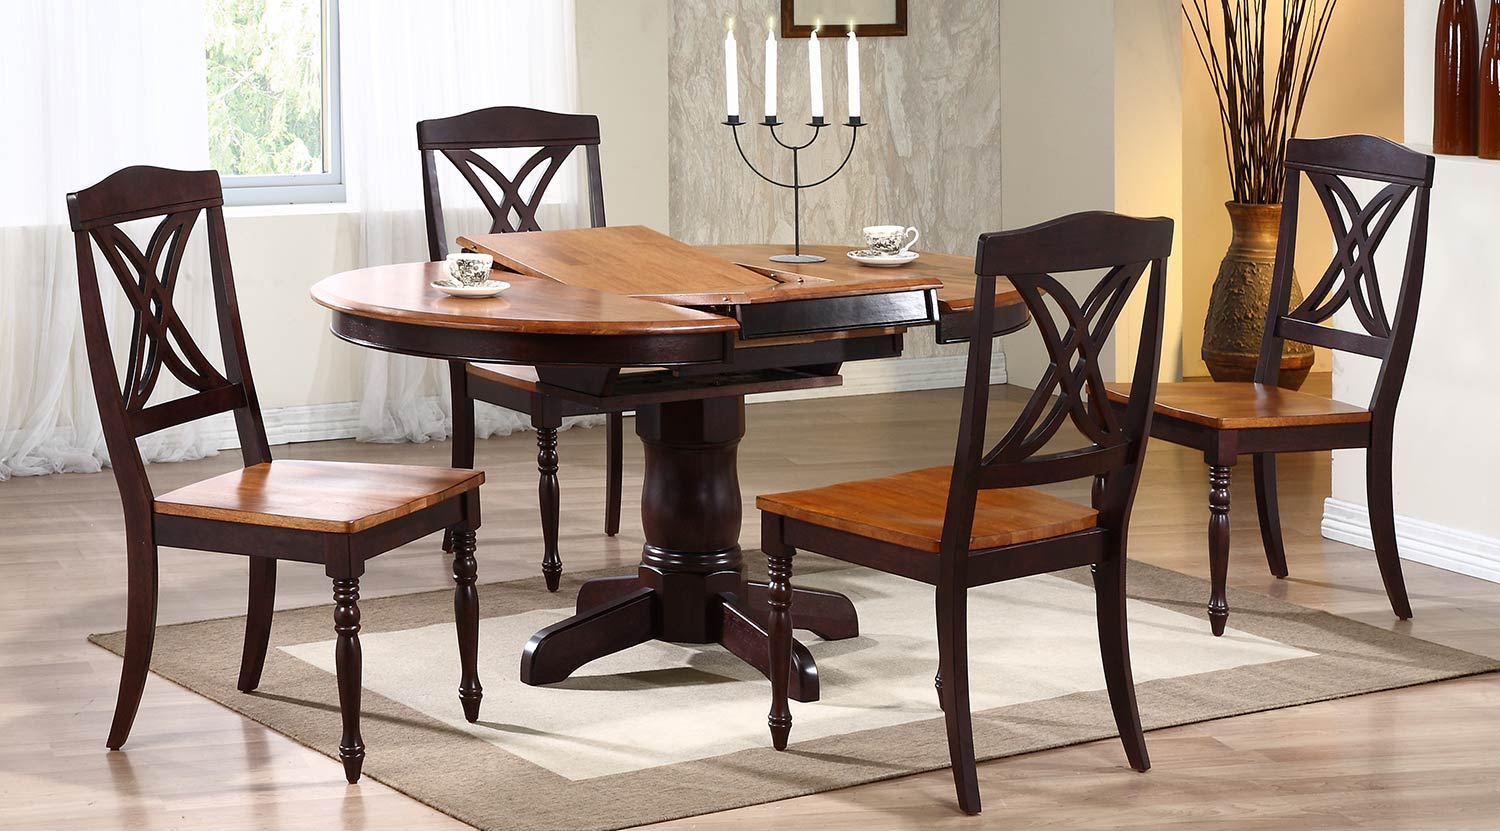 Iconic Furniture Round/Oval Pedestal Dining Set with Butterfly Back Chair - Whiskey/Mocha